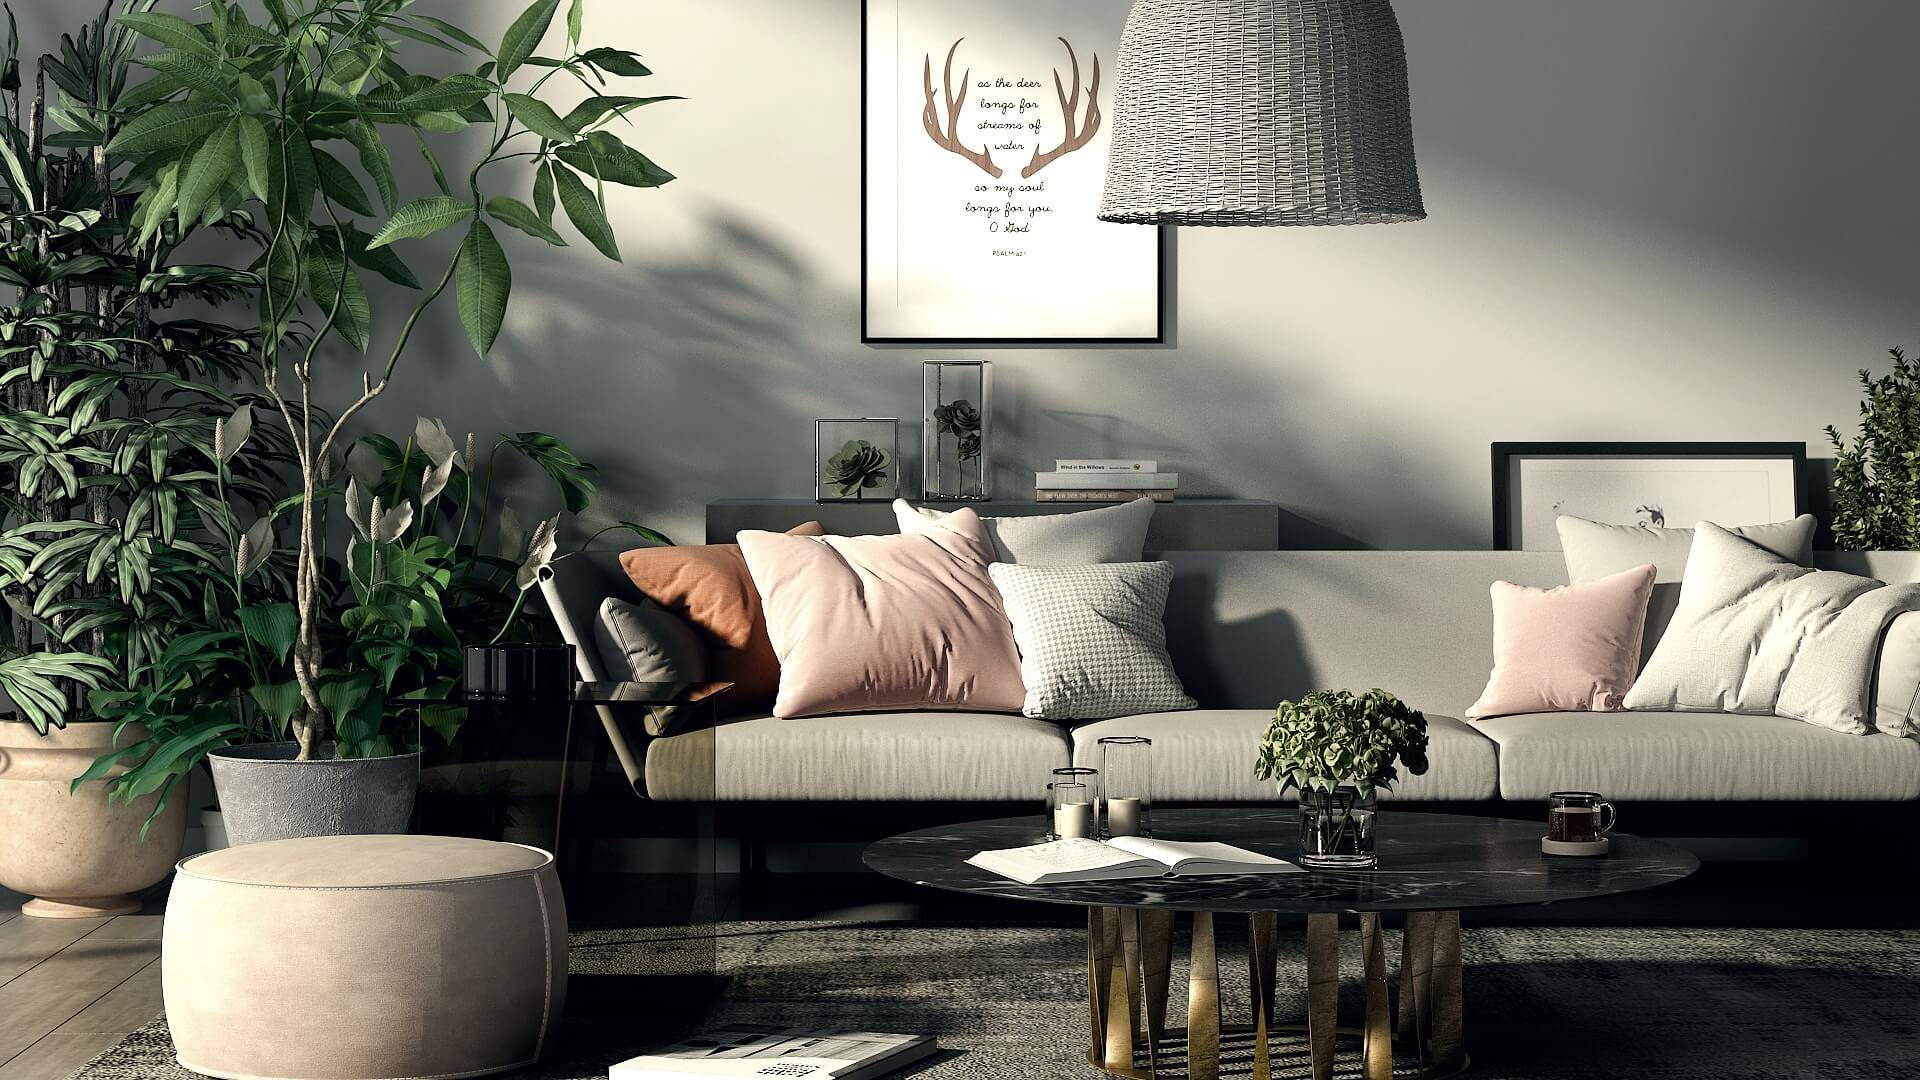 NONAGON style n9s studio render of the week lixe living room boho eclectic rattan lampshade plants marble gray pink sofa